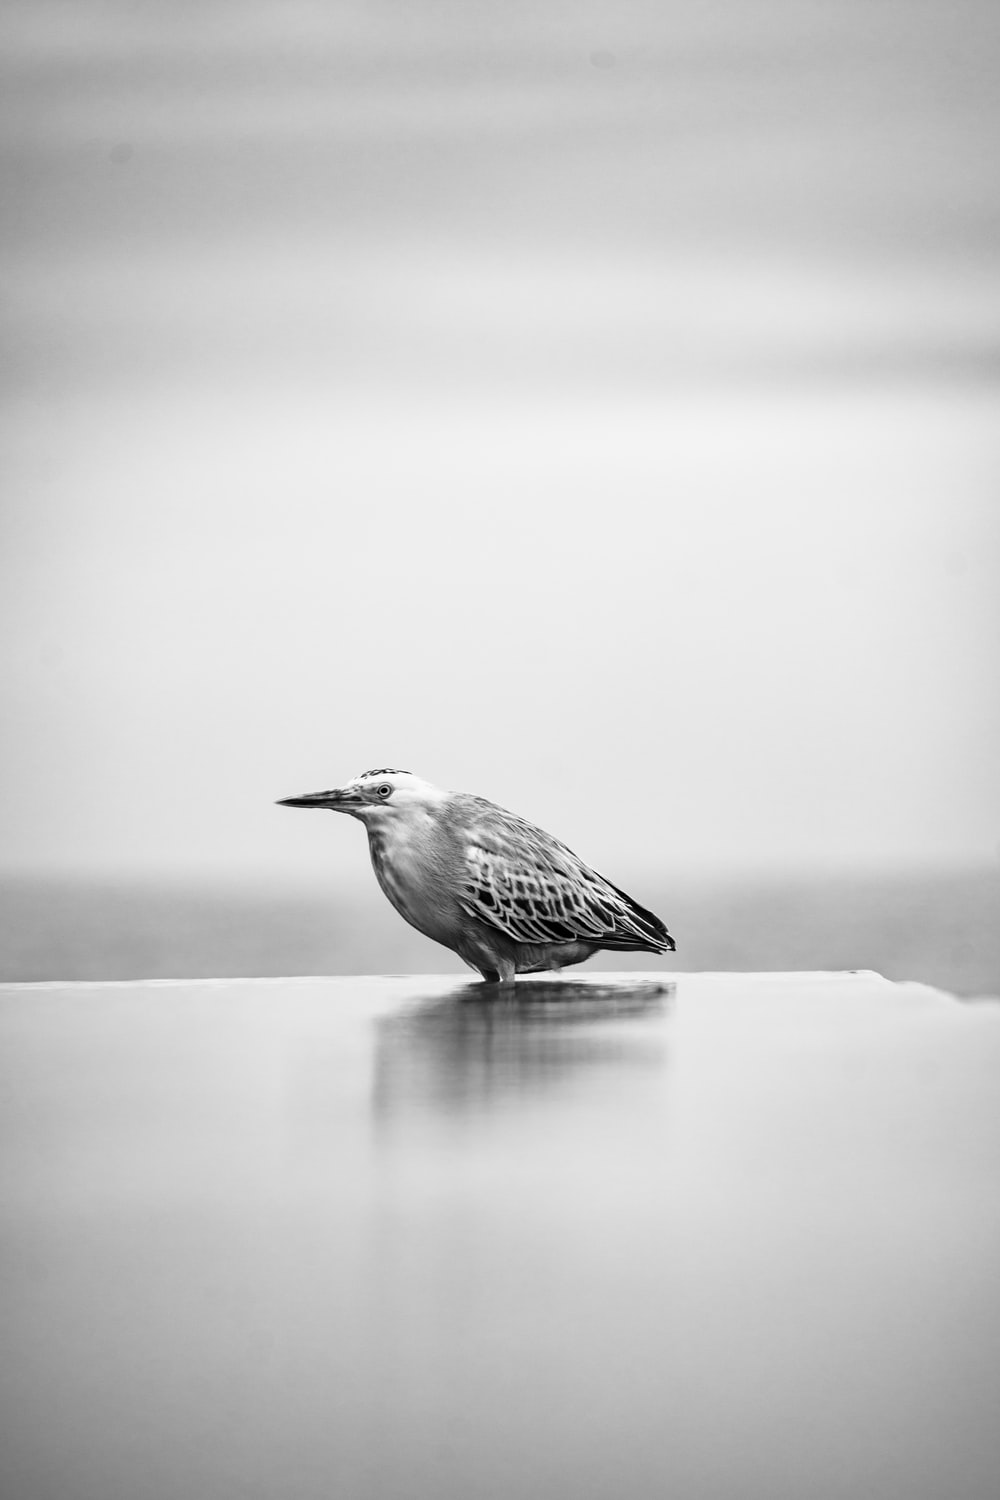 greyscale photography of bird